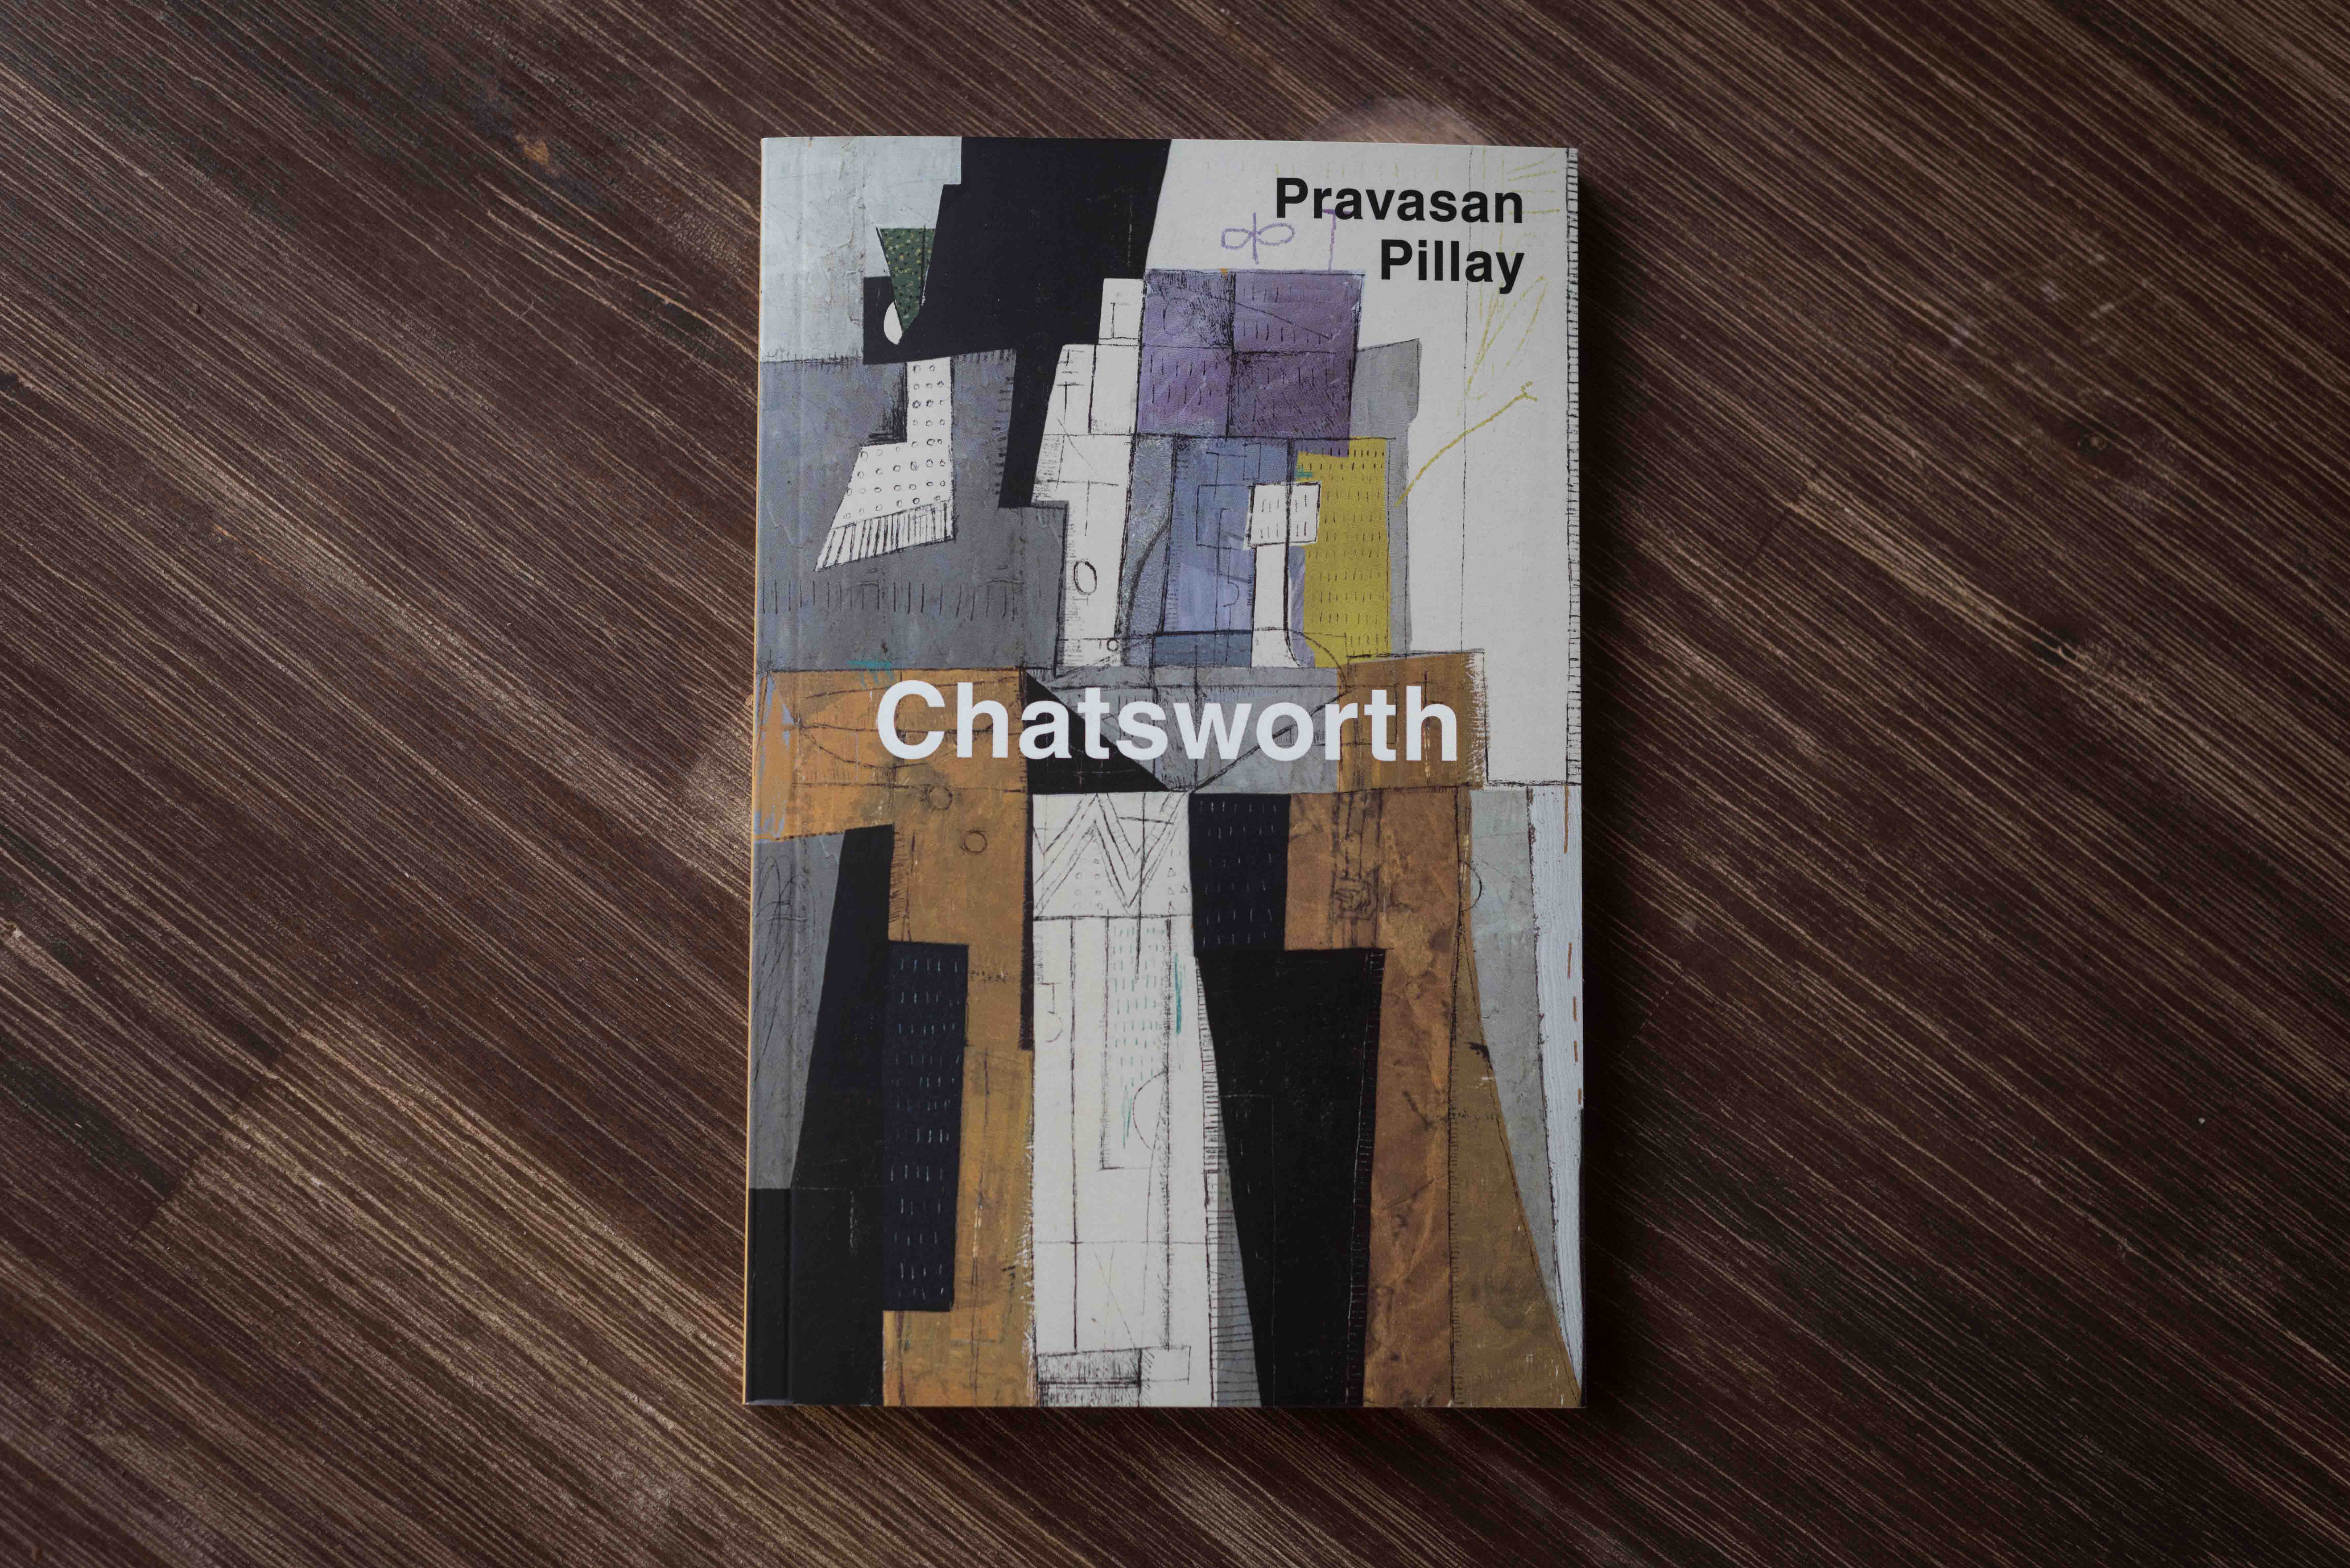 Chatsworth by Pravasan Pillay